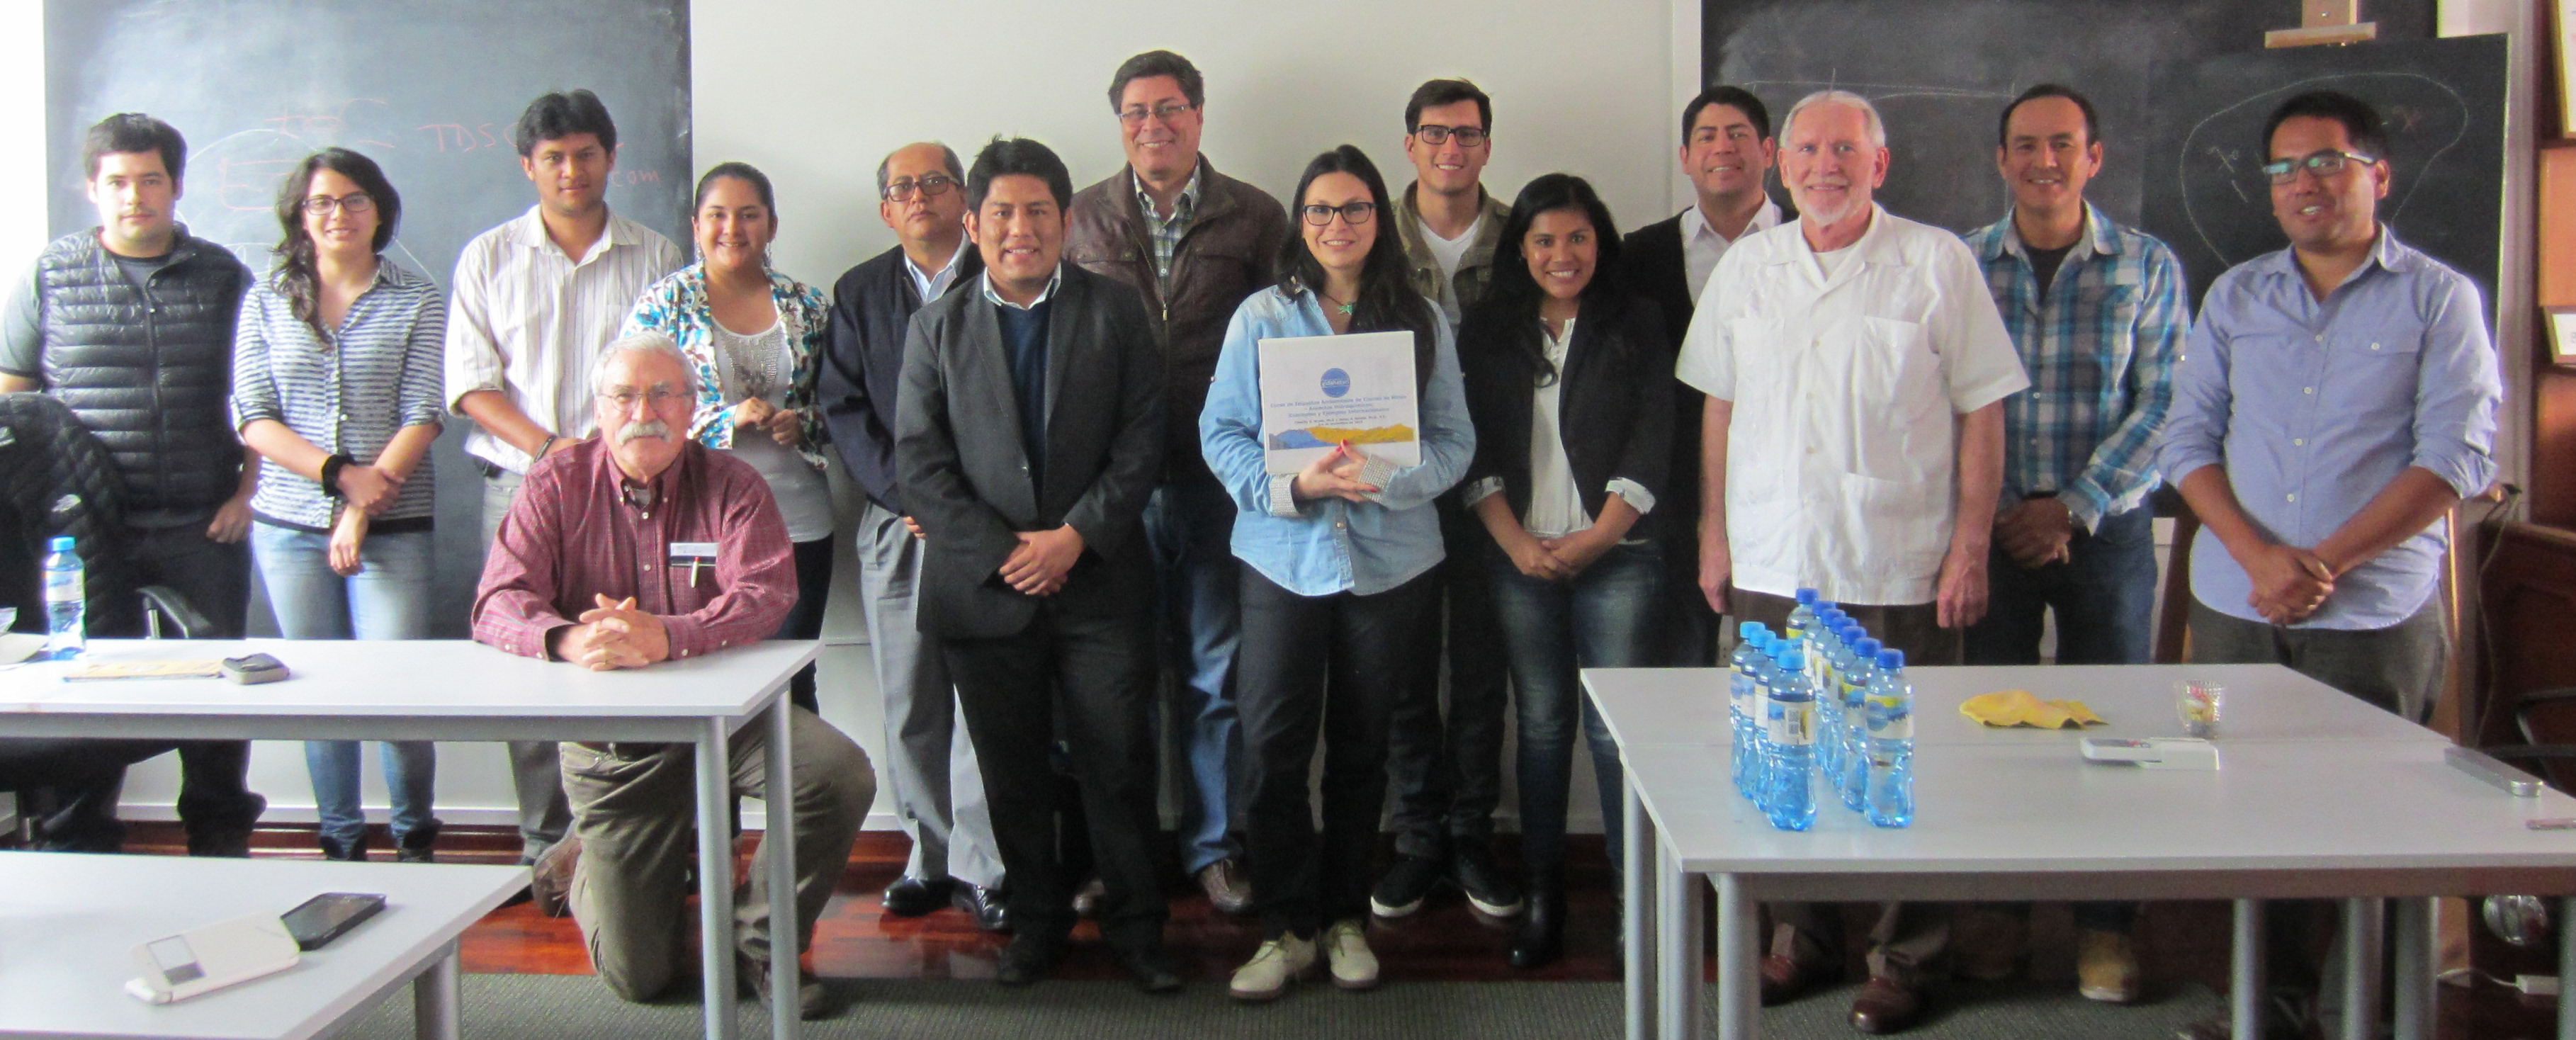 Tim (kneeling on the left) with his class in Lima.